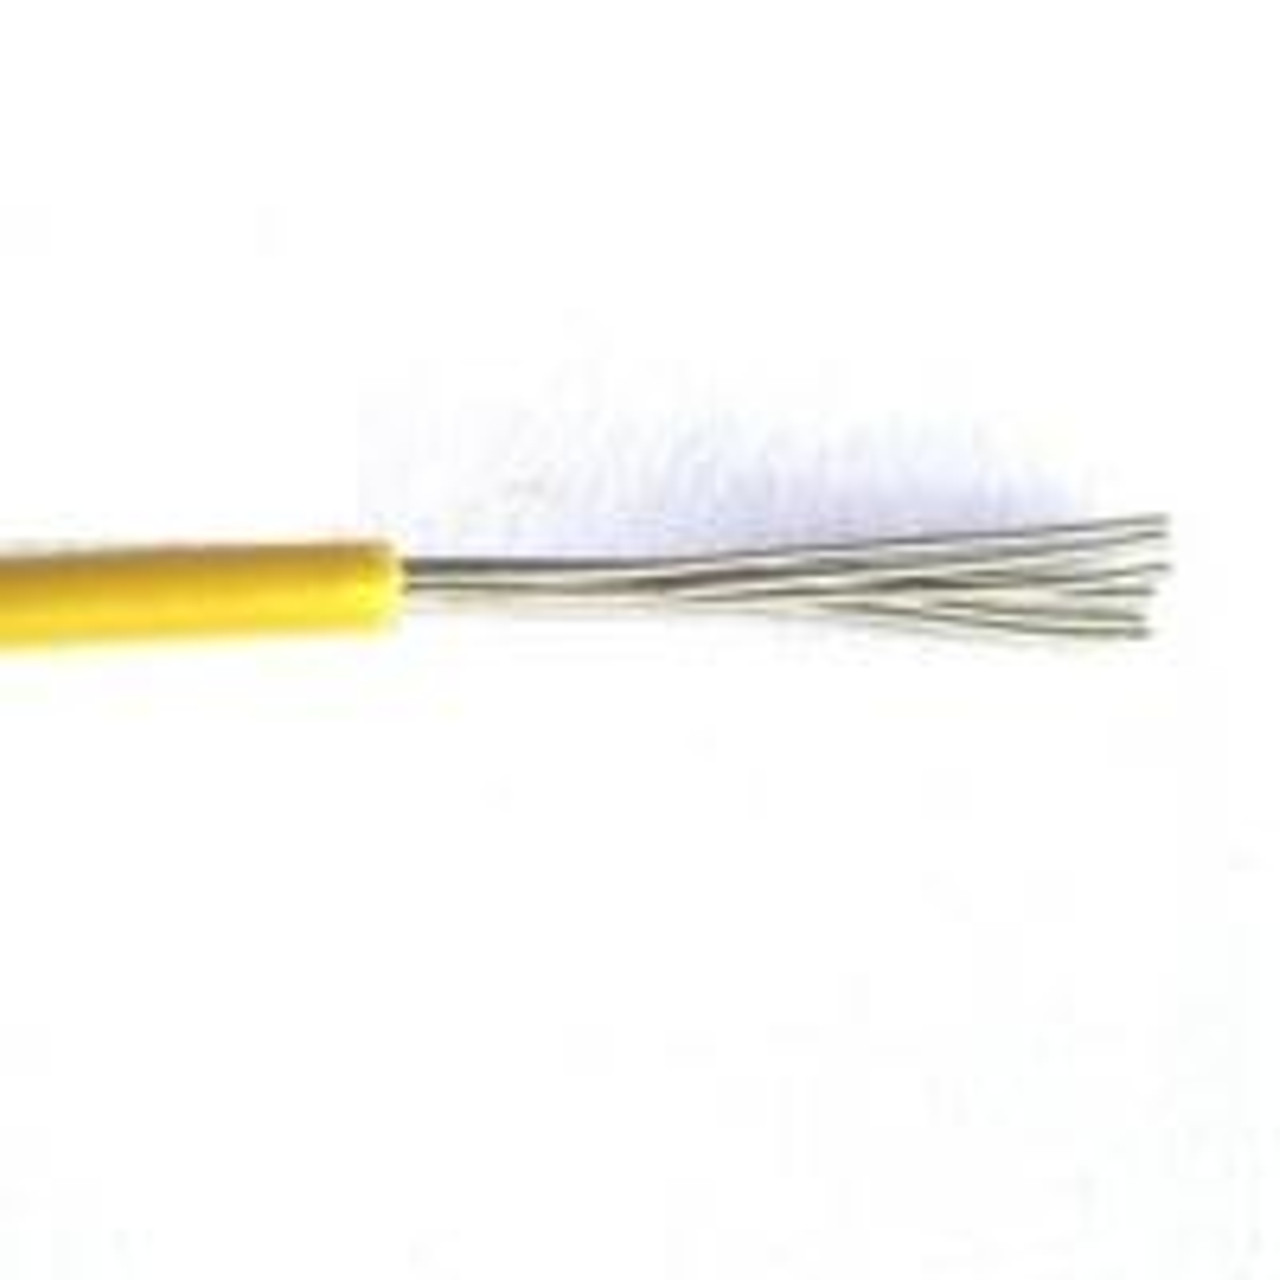 Stranded 22 Gauge Guitar Circuit Wire-Yellow